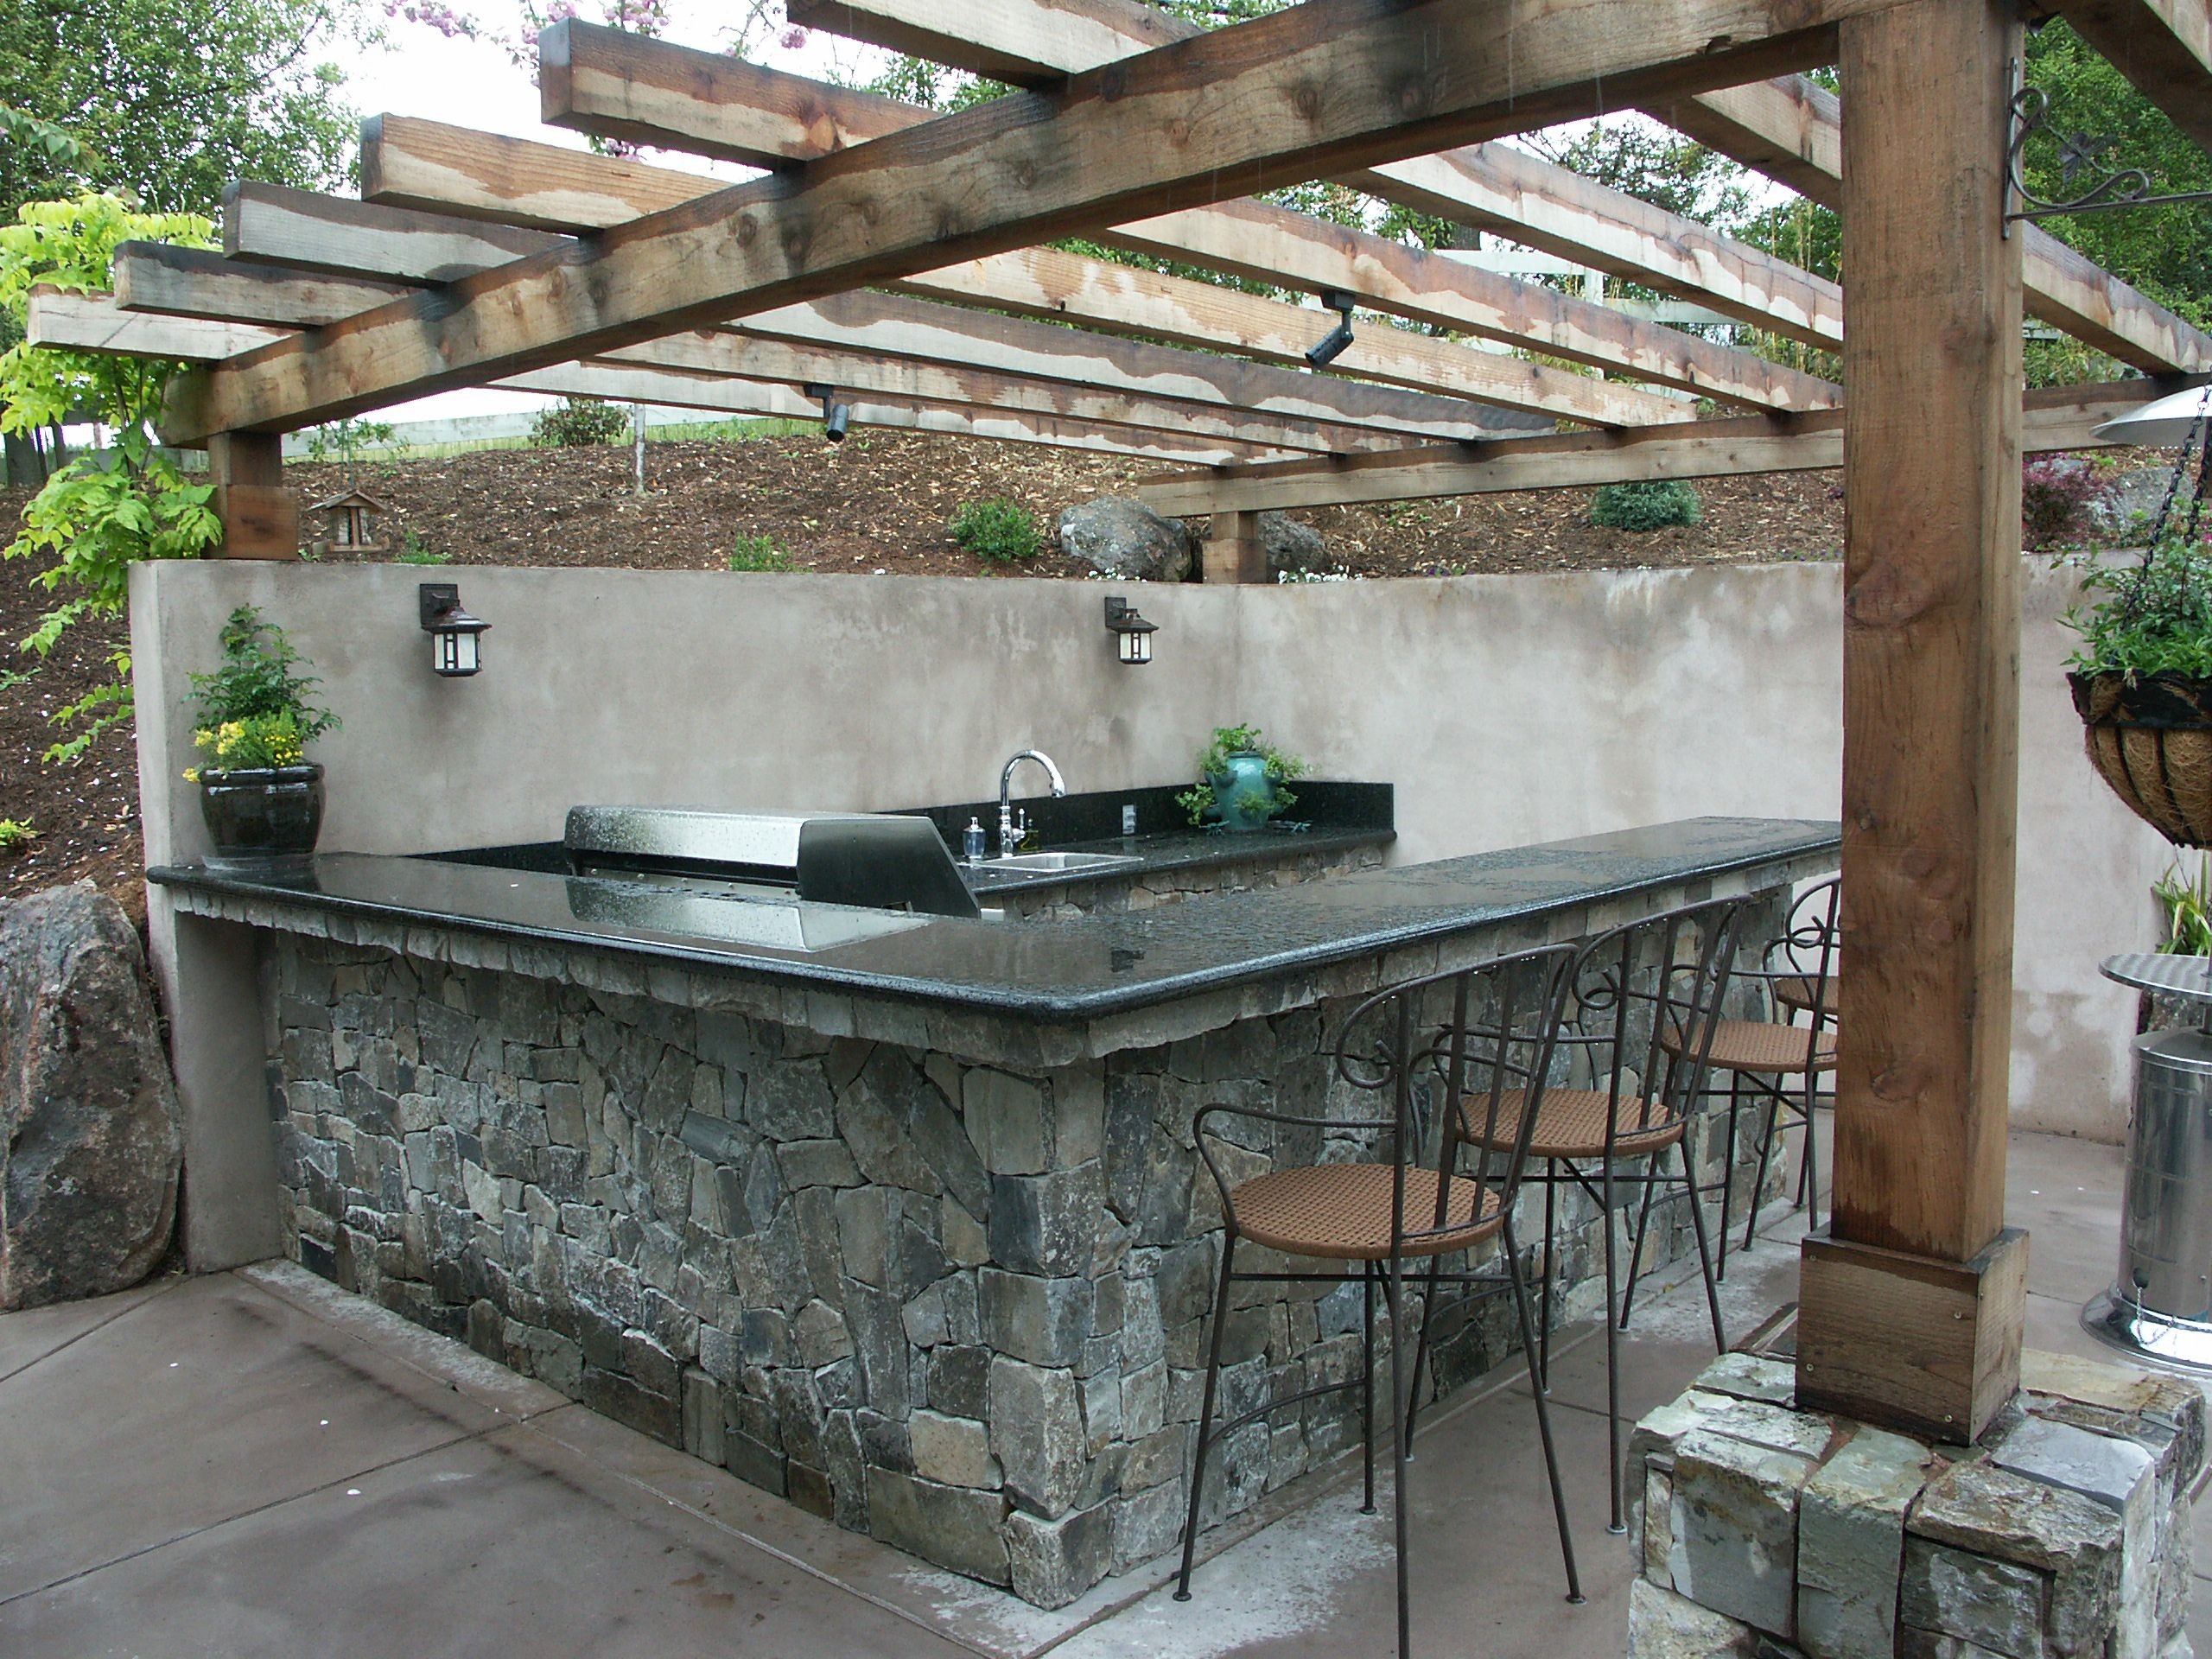 outdoor kitchen cut into slope. stone veneer finish with granite